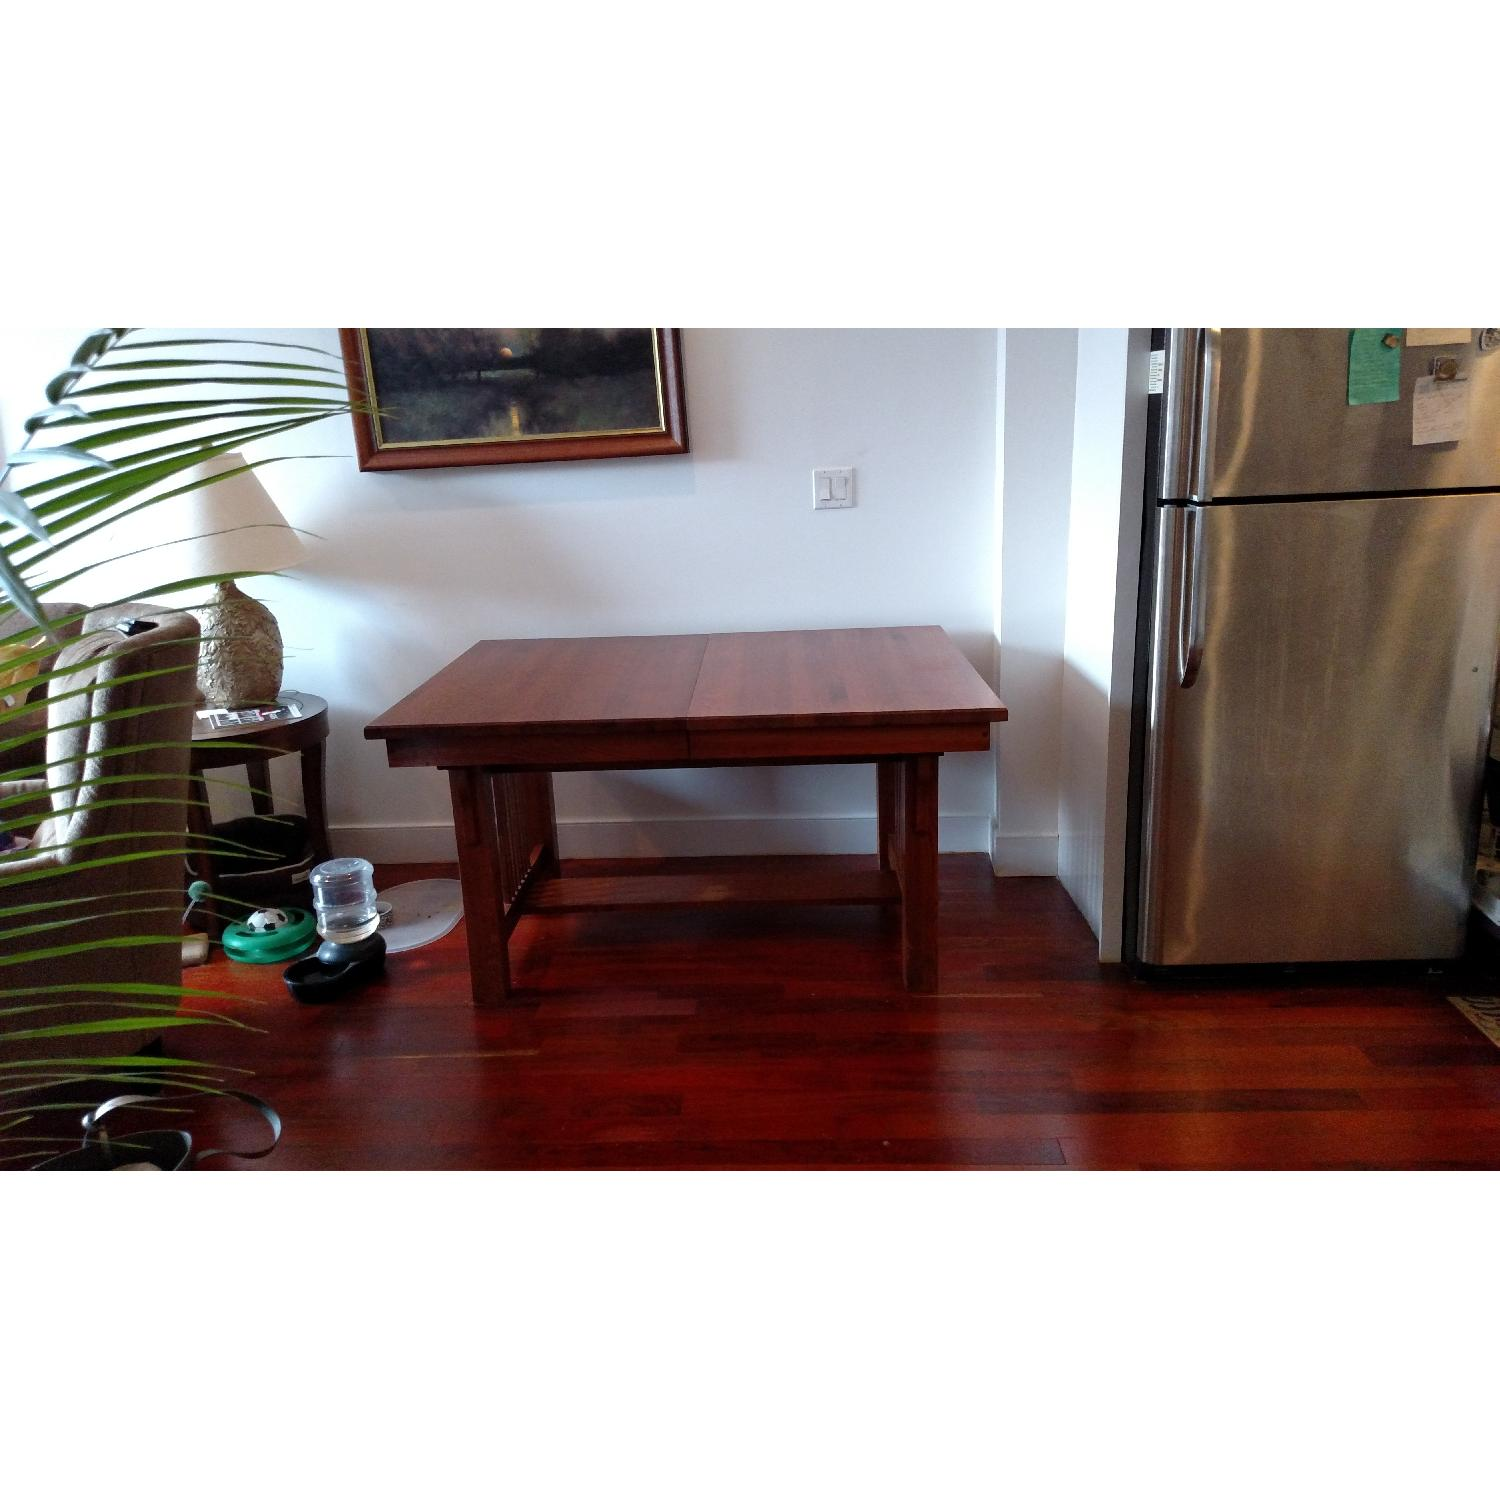 Solid Oak Mission Style Dining Table w/ 2 Self-Raising Leaves - image-1